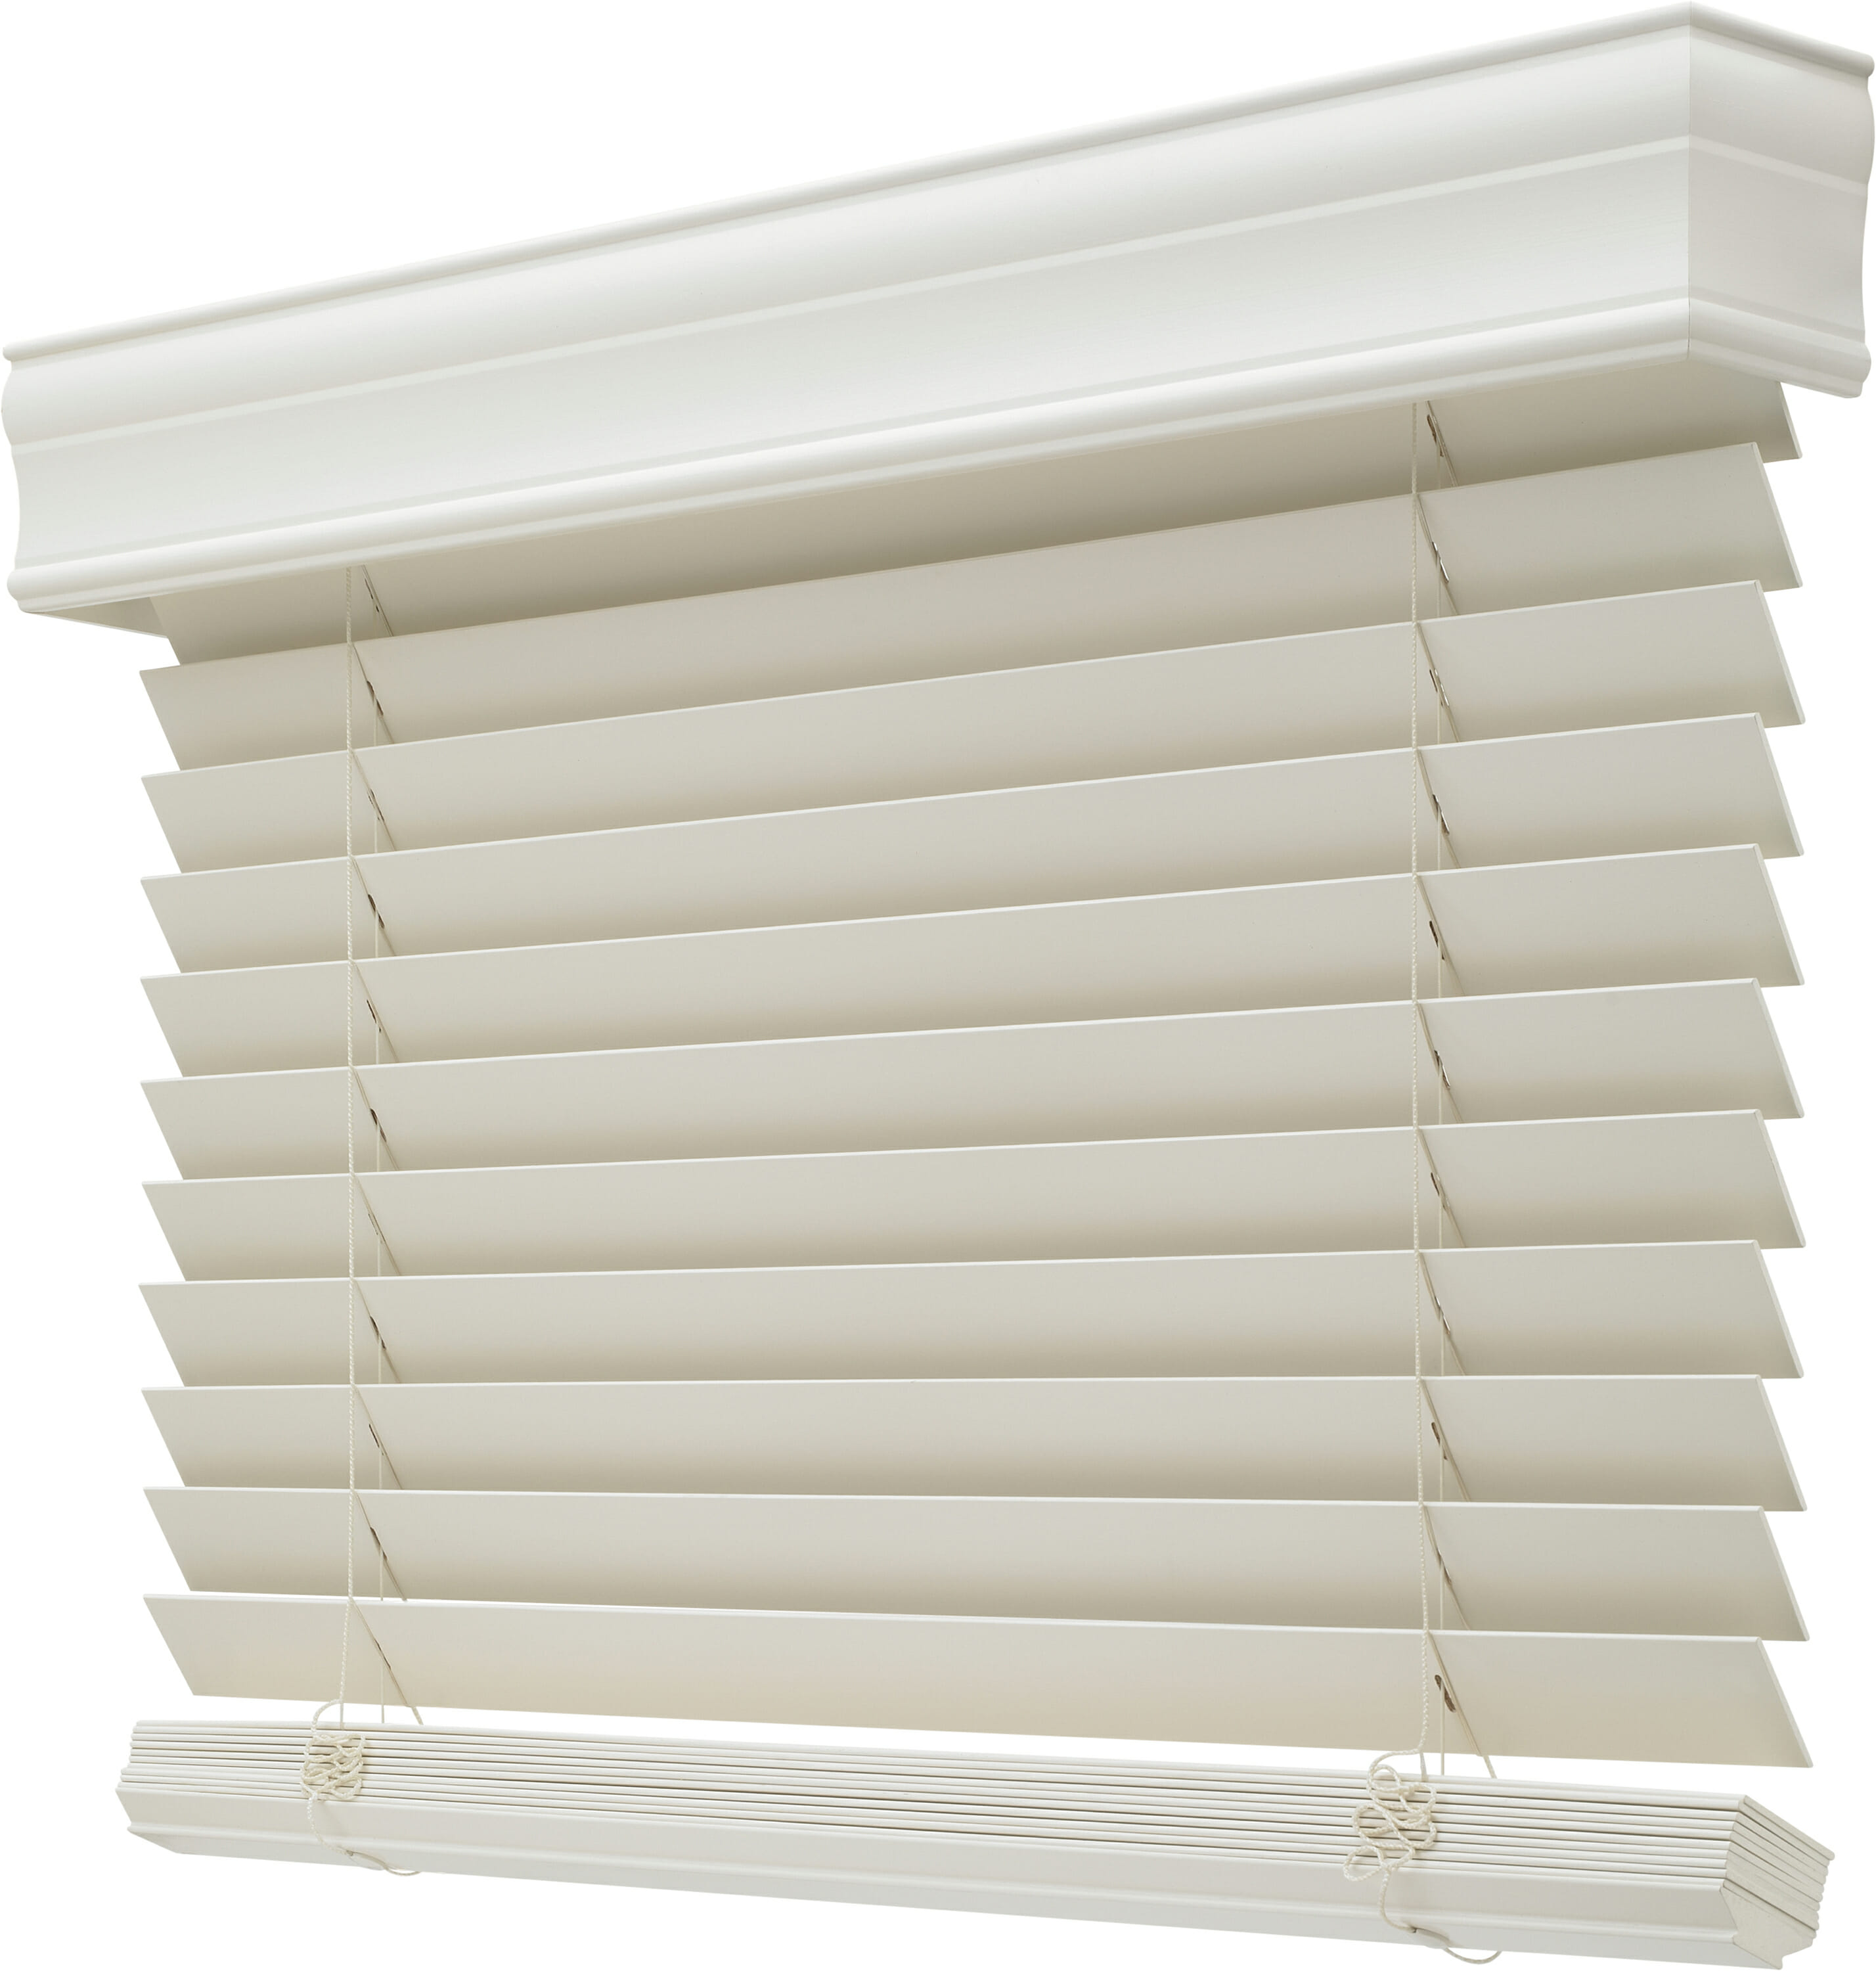 Aluminum Blinds - 3 Blind Mice Window Coverings